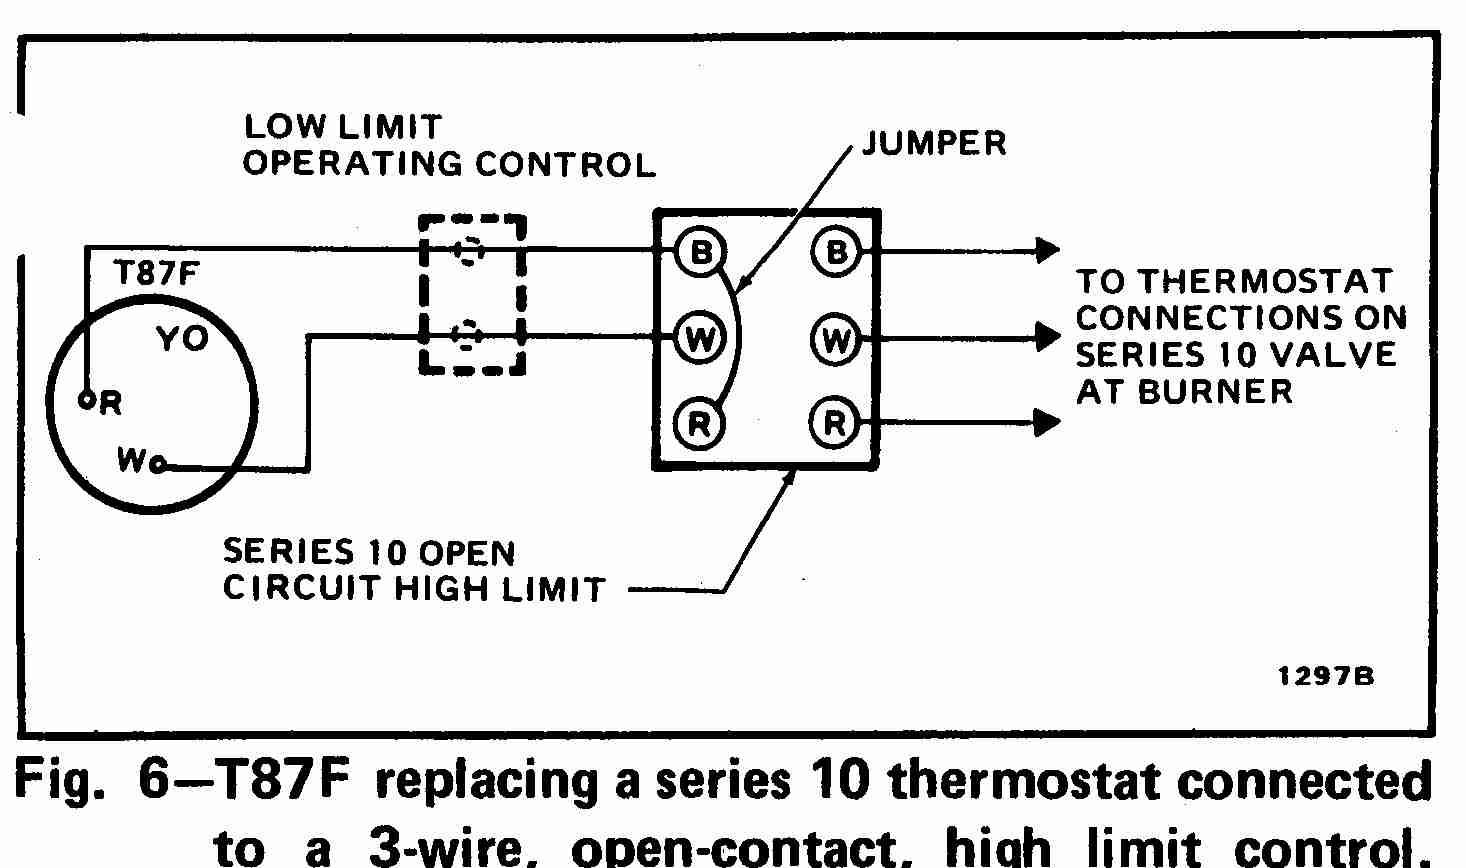 thermostat wiring schematics wiring diagramsthermostat wiring schematic wiring diagram third level heat pump thermostat wiring schematic room thermostat wiring diagrams